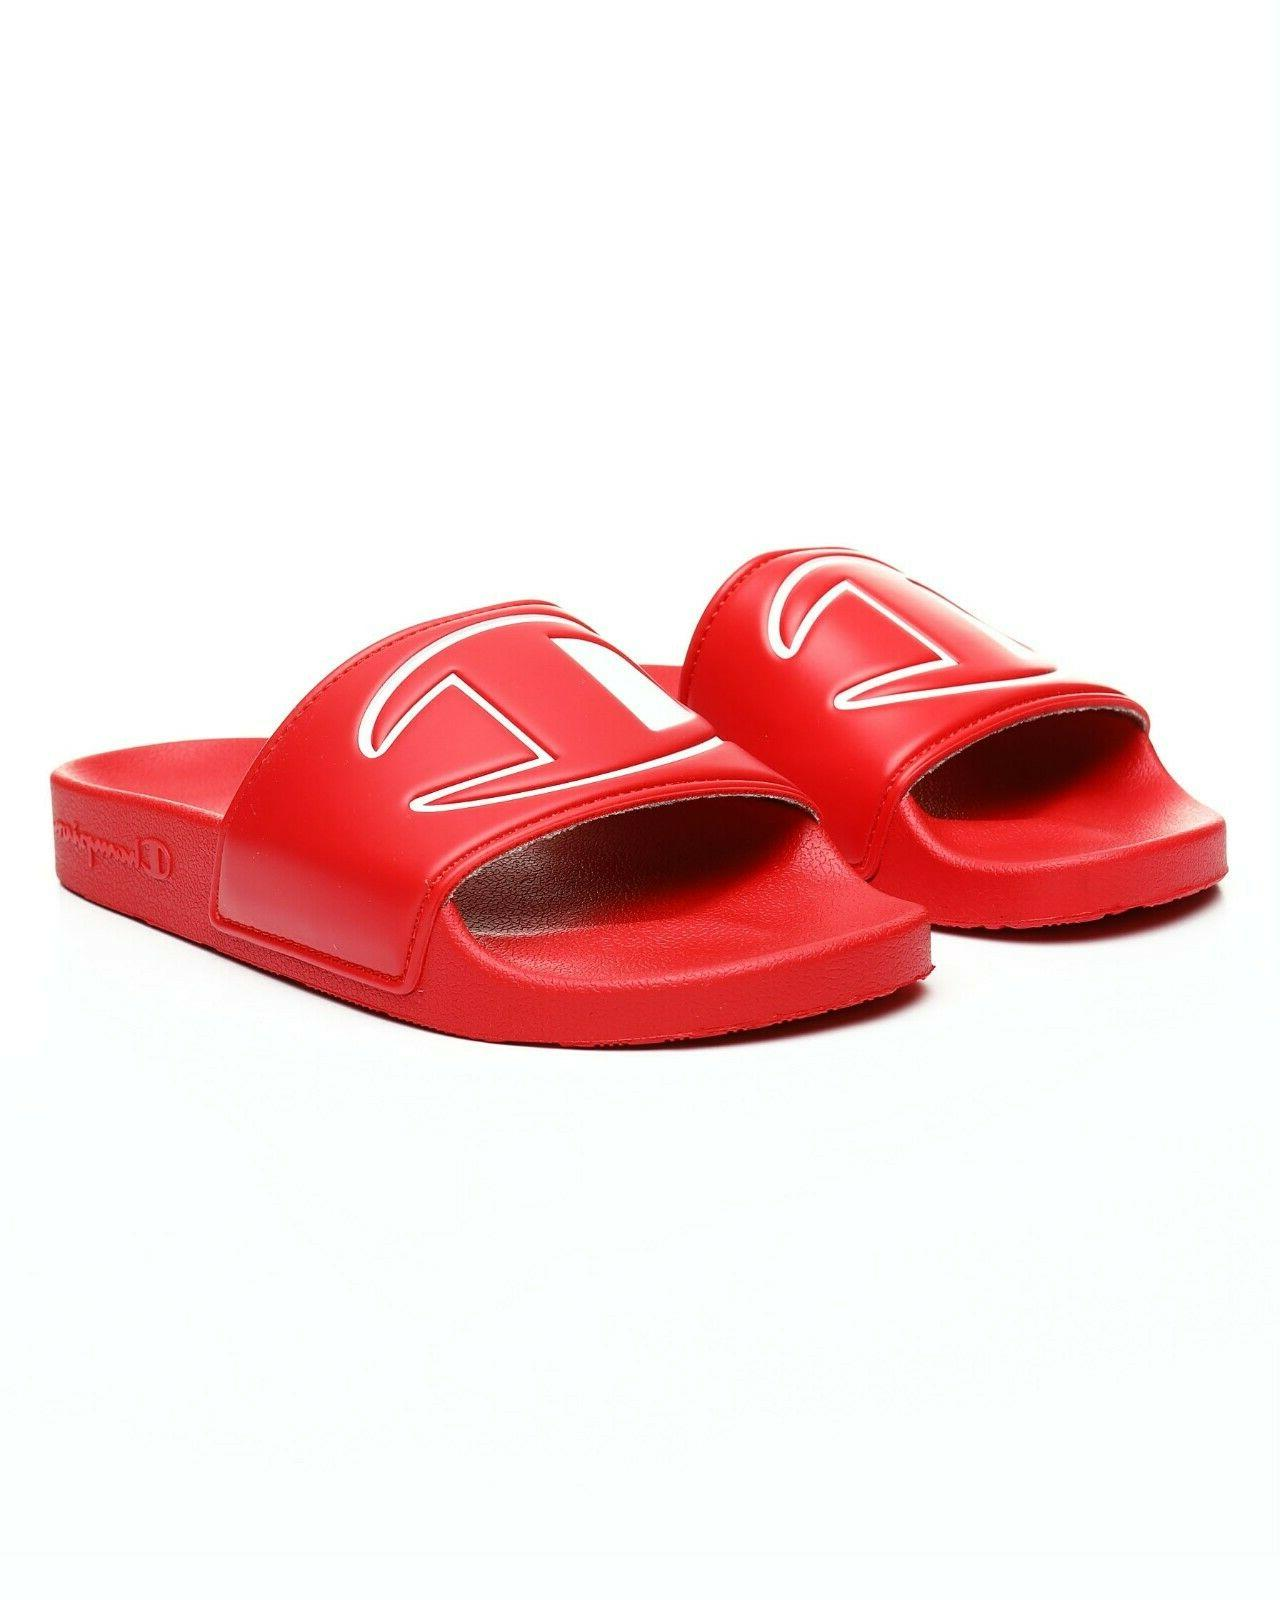 new women s ipo slide slippers red